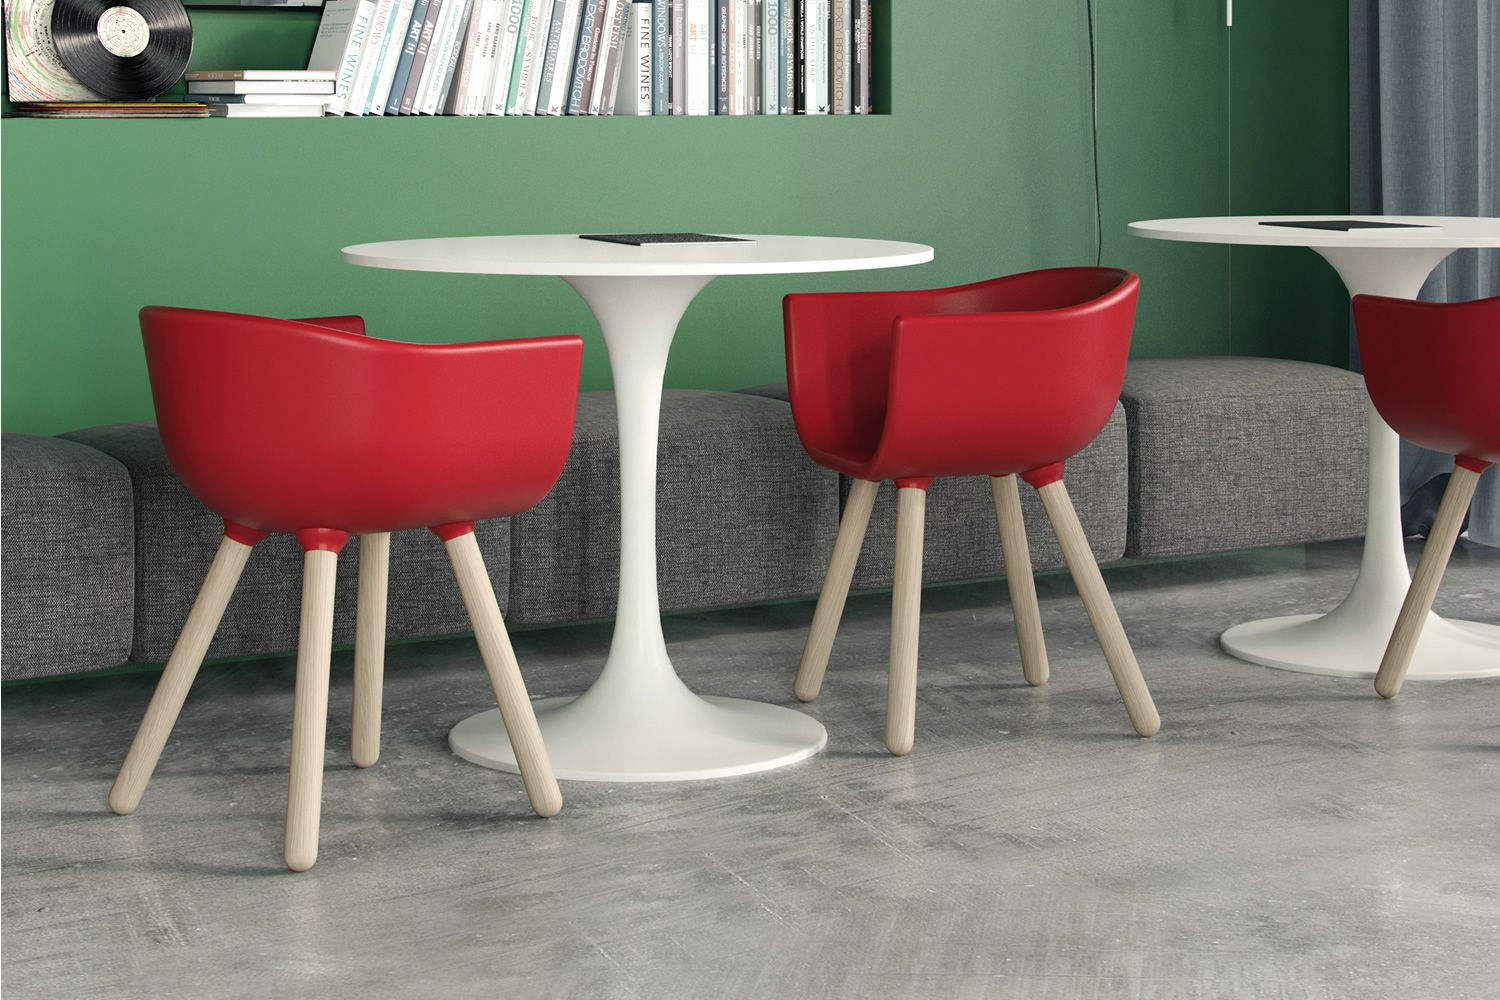 Tulip small poltroncina di design chairs&more in legno e